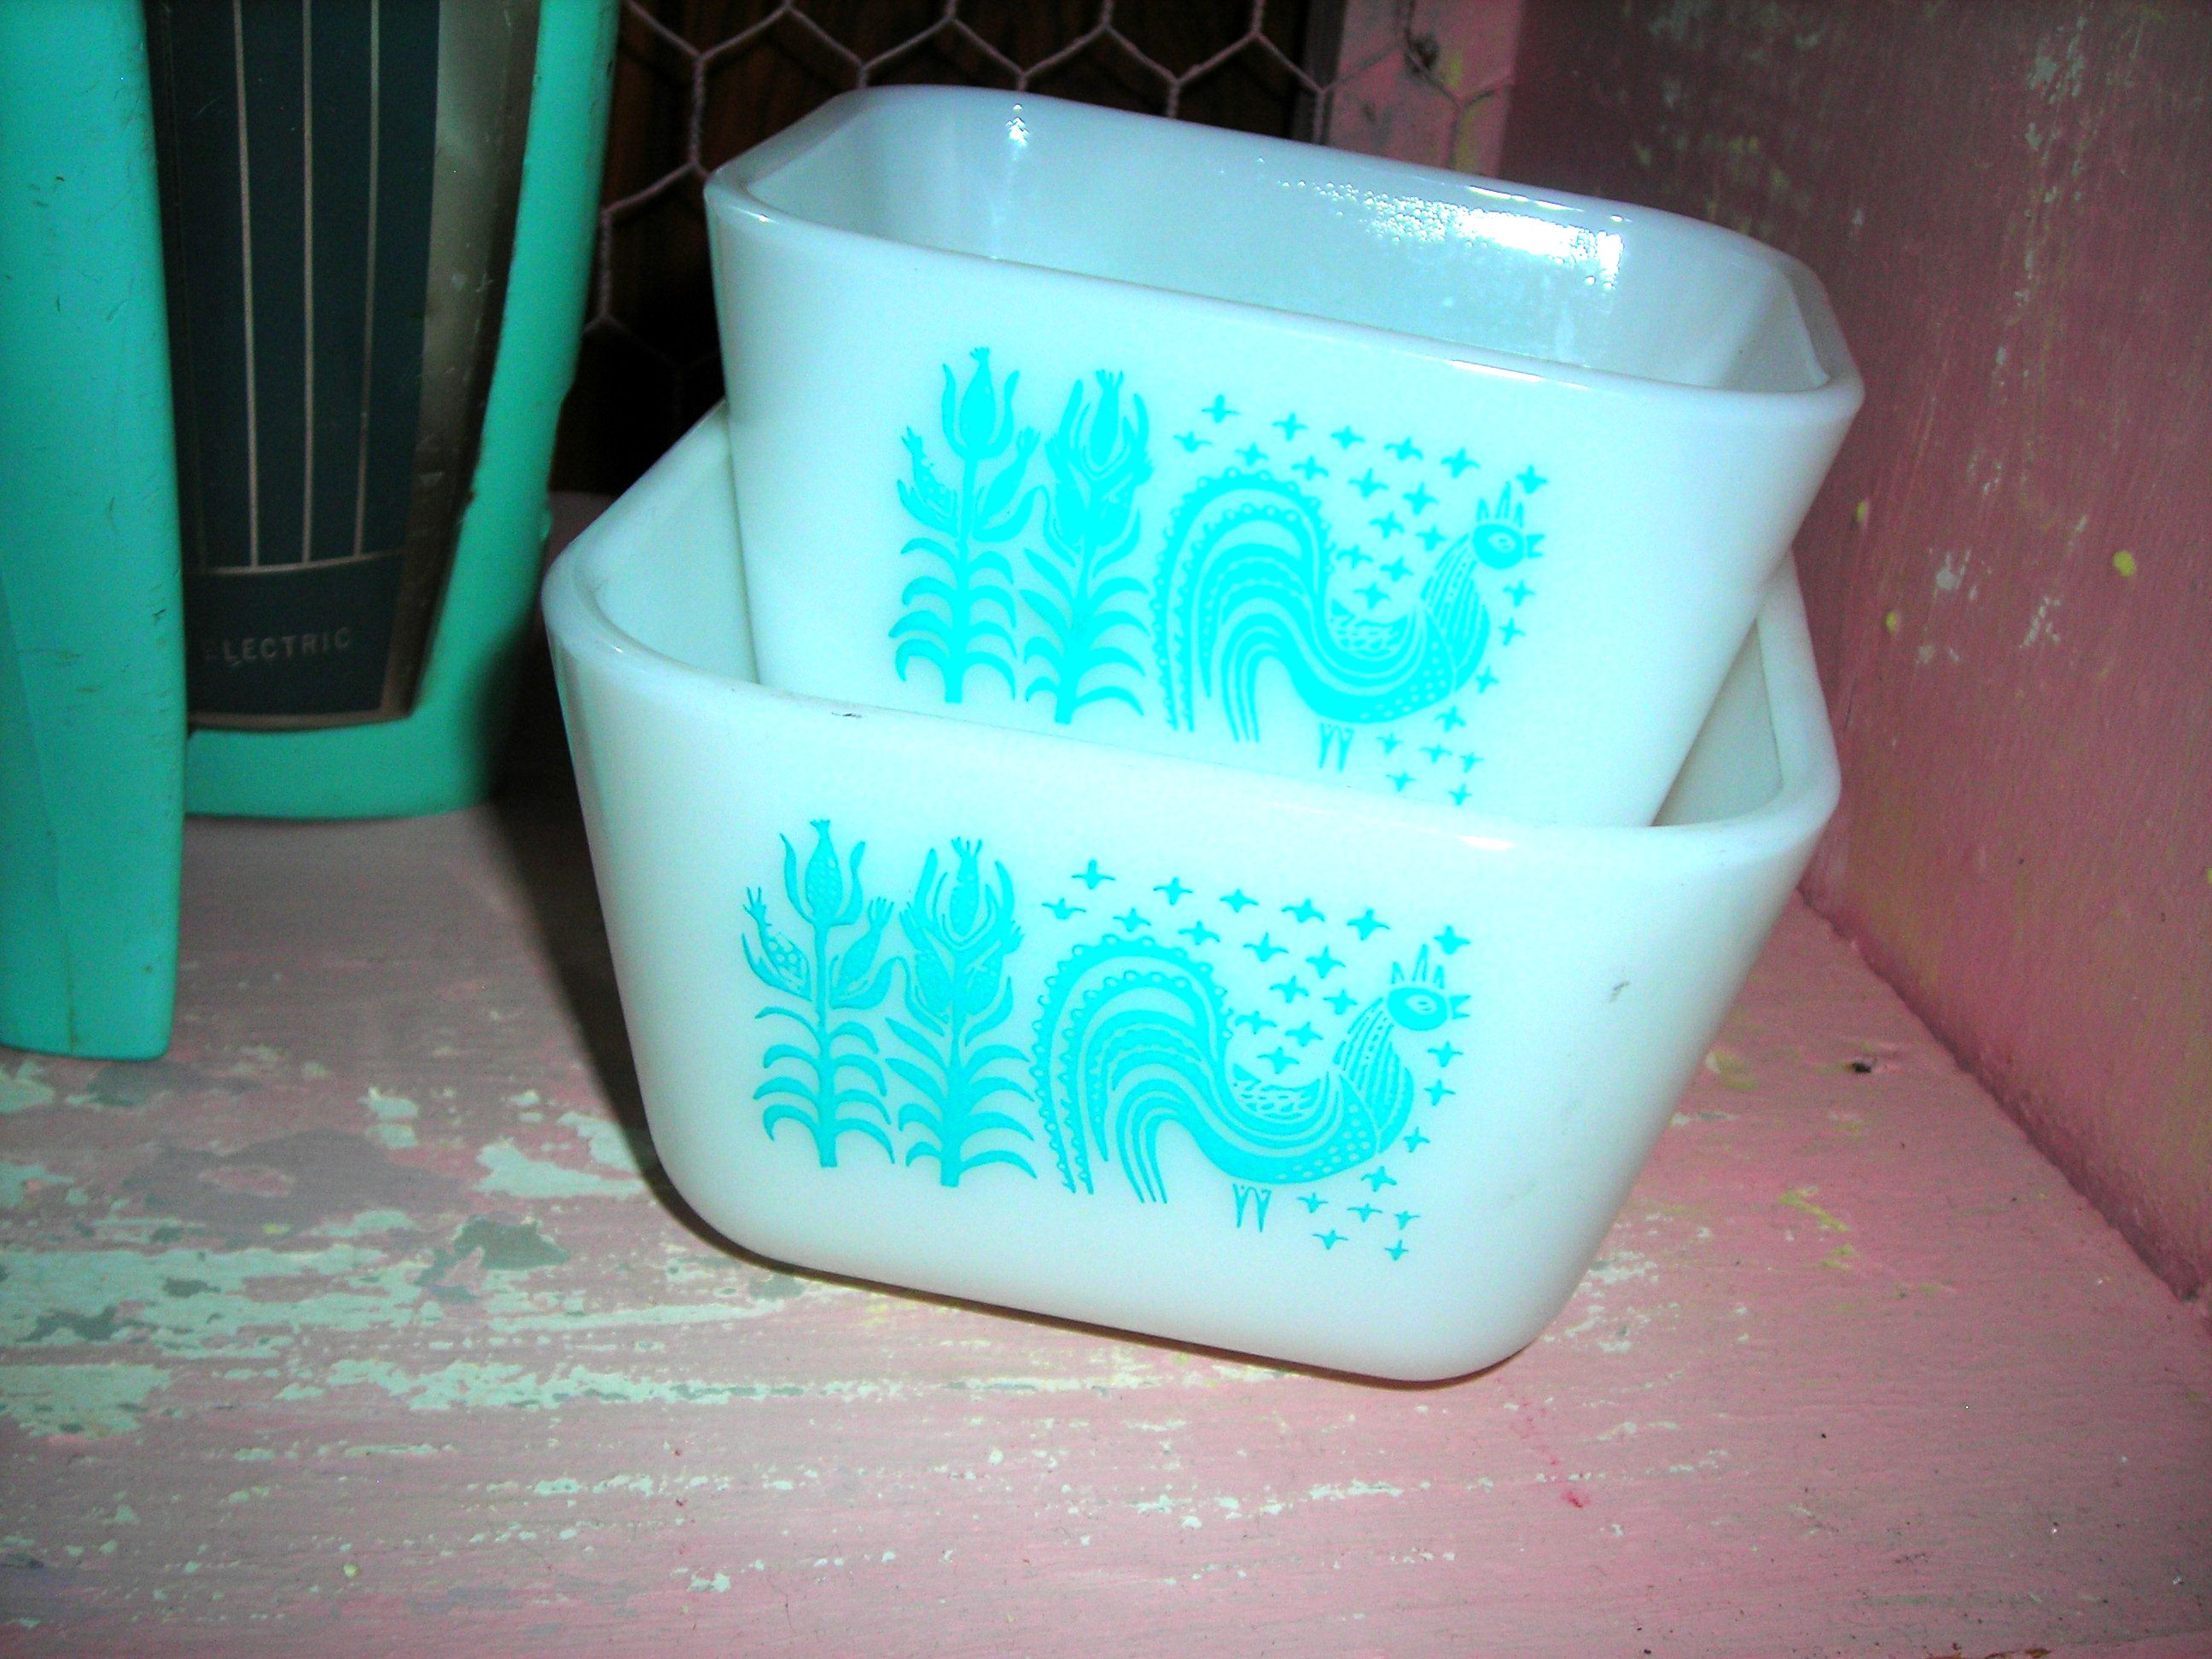 my friend bonnie got me these vintage turquoise pyrex pieces. we both cried because without realizing it, she had bought me the SAME set that my mother used to have ... i only had one piece left of hers.